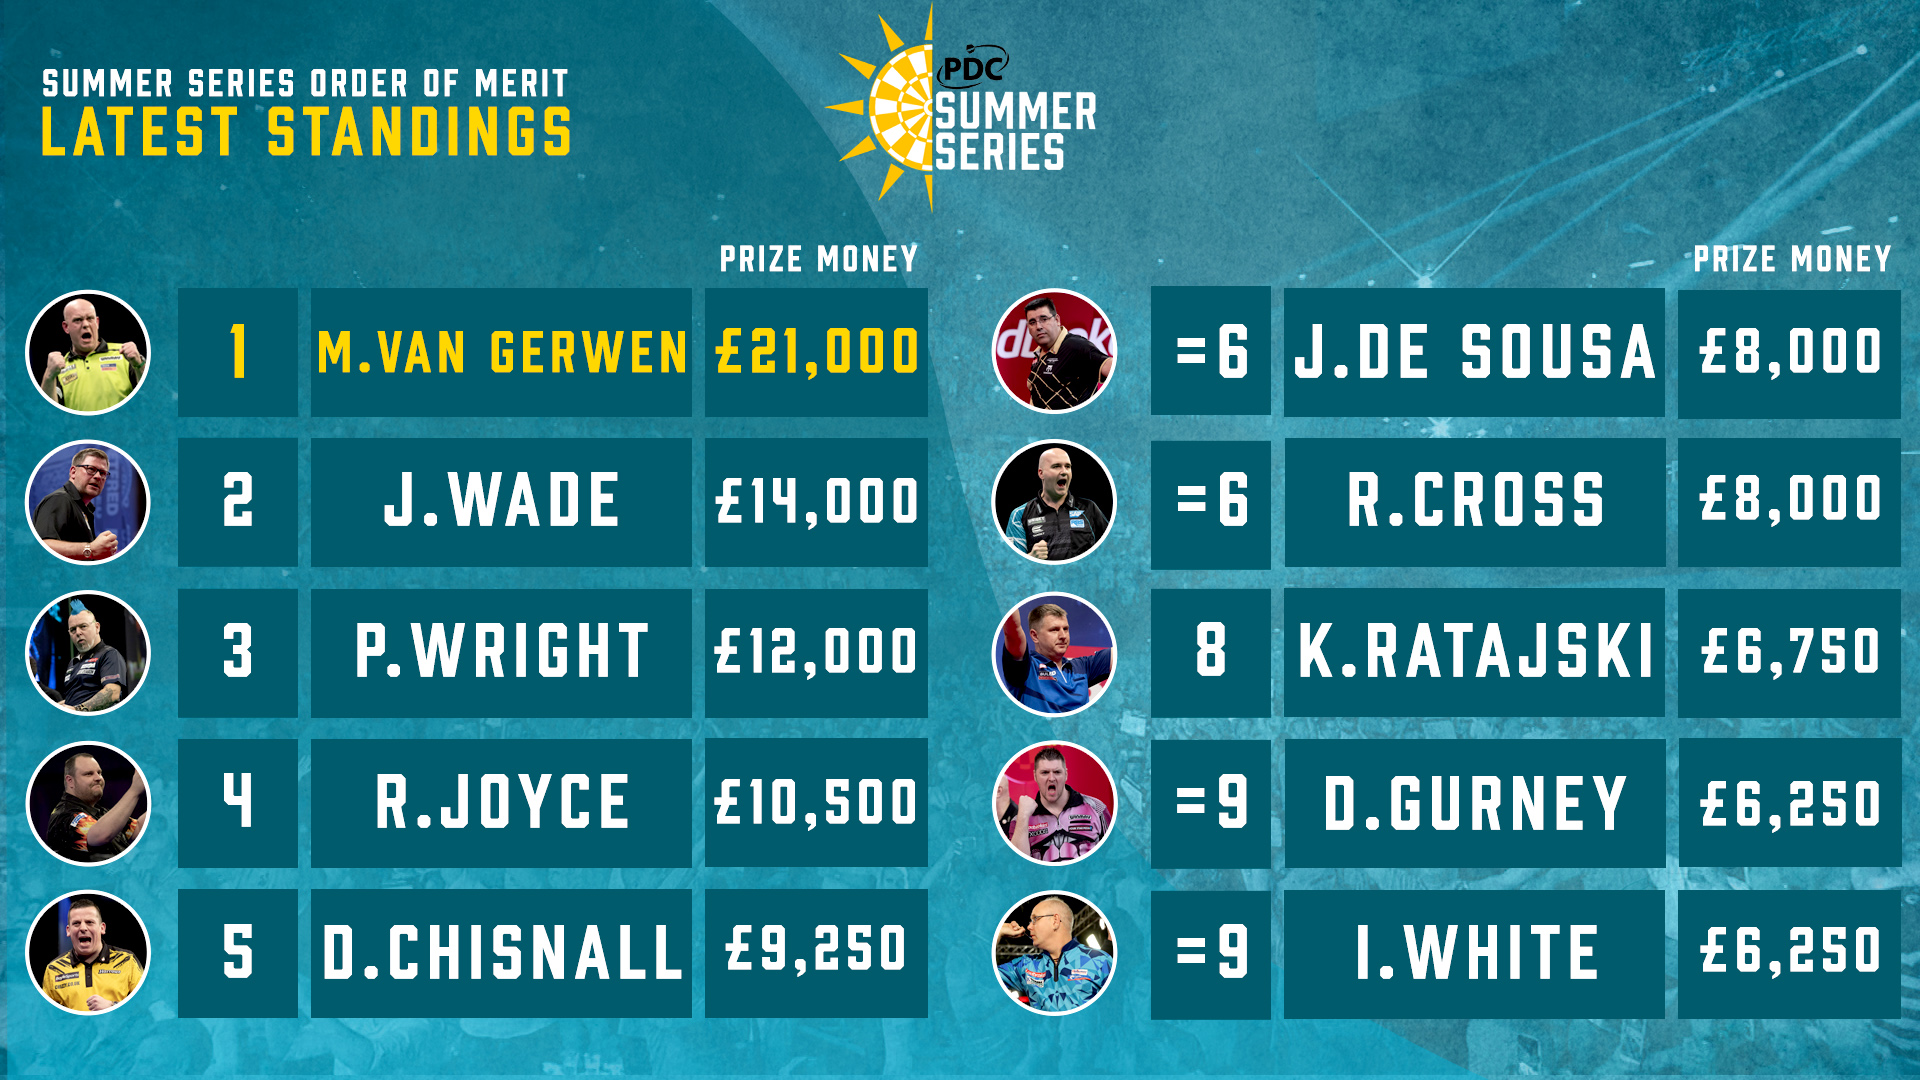 Summer Series Order of Merit